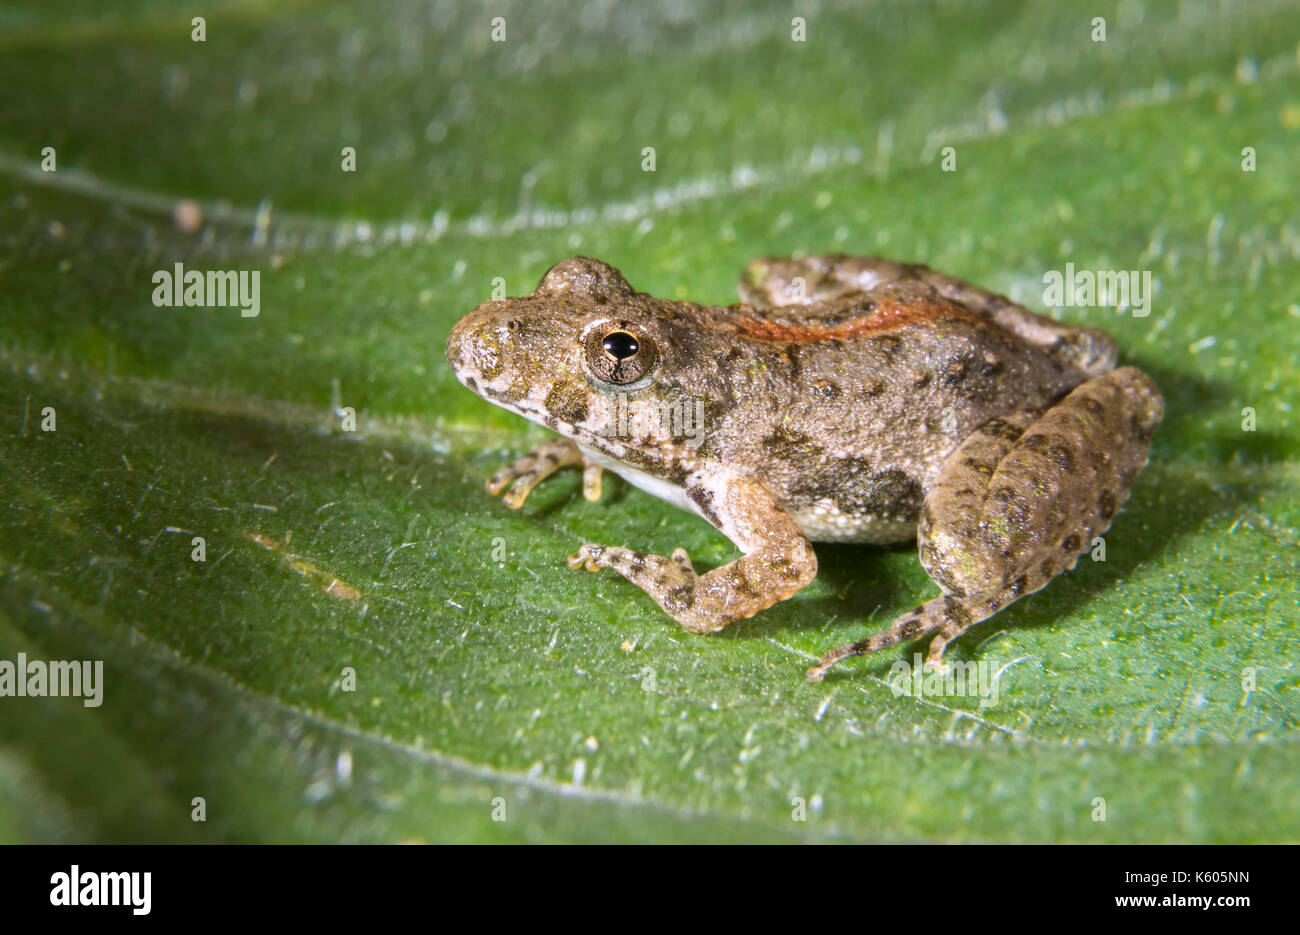 Blanchard's Northern Cricket Frog (Acris crepitans blanchardi) on a leaf, Ames, Iowa, USA - Stock Image